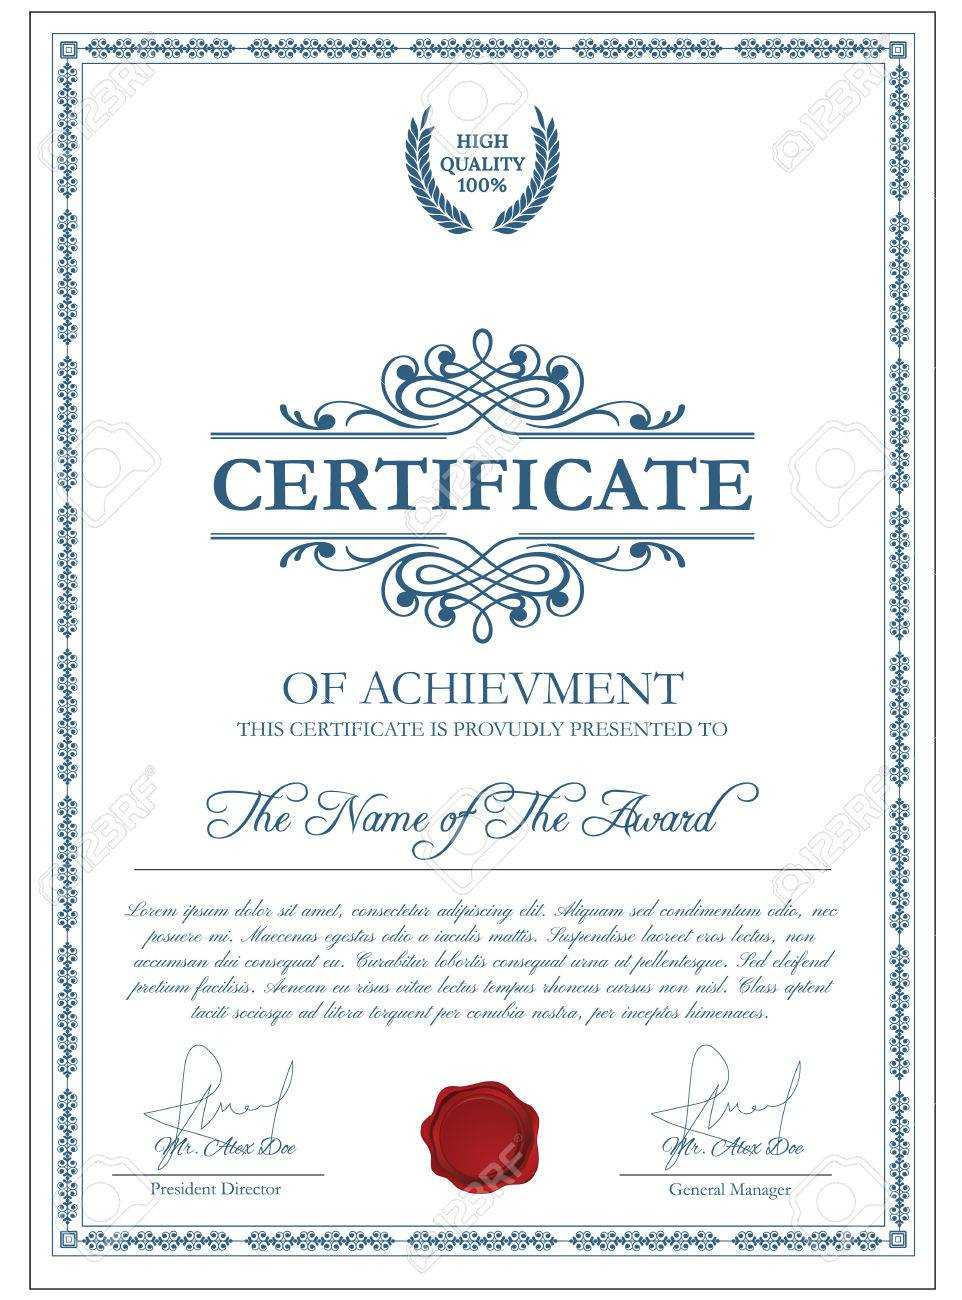 Certificate Template With Guilloche Elements. Blue Diploma Border.. Throughout Validation Certificate Template